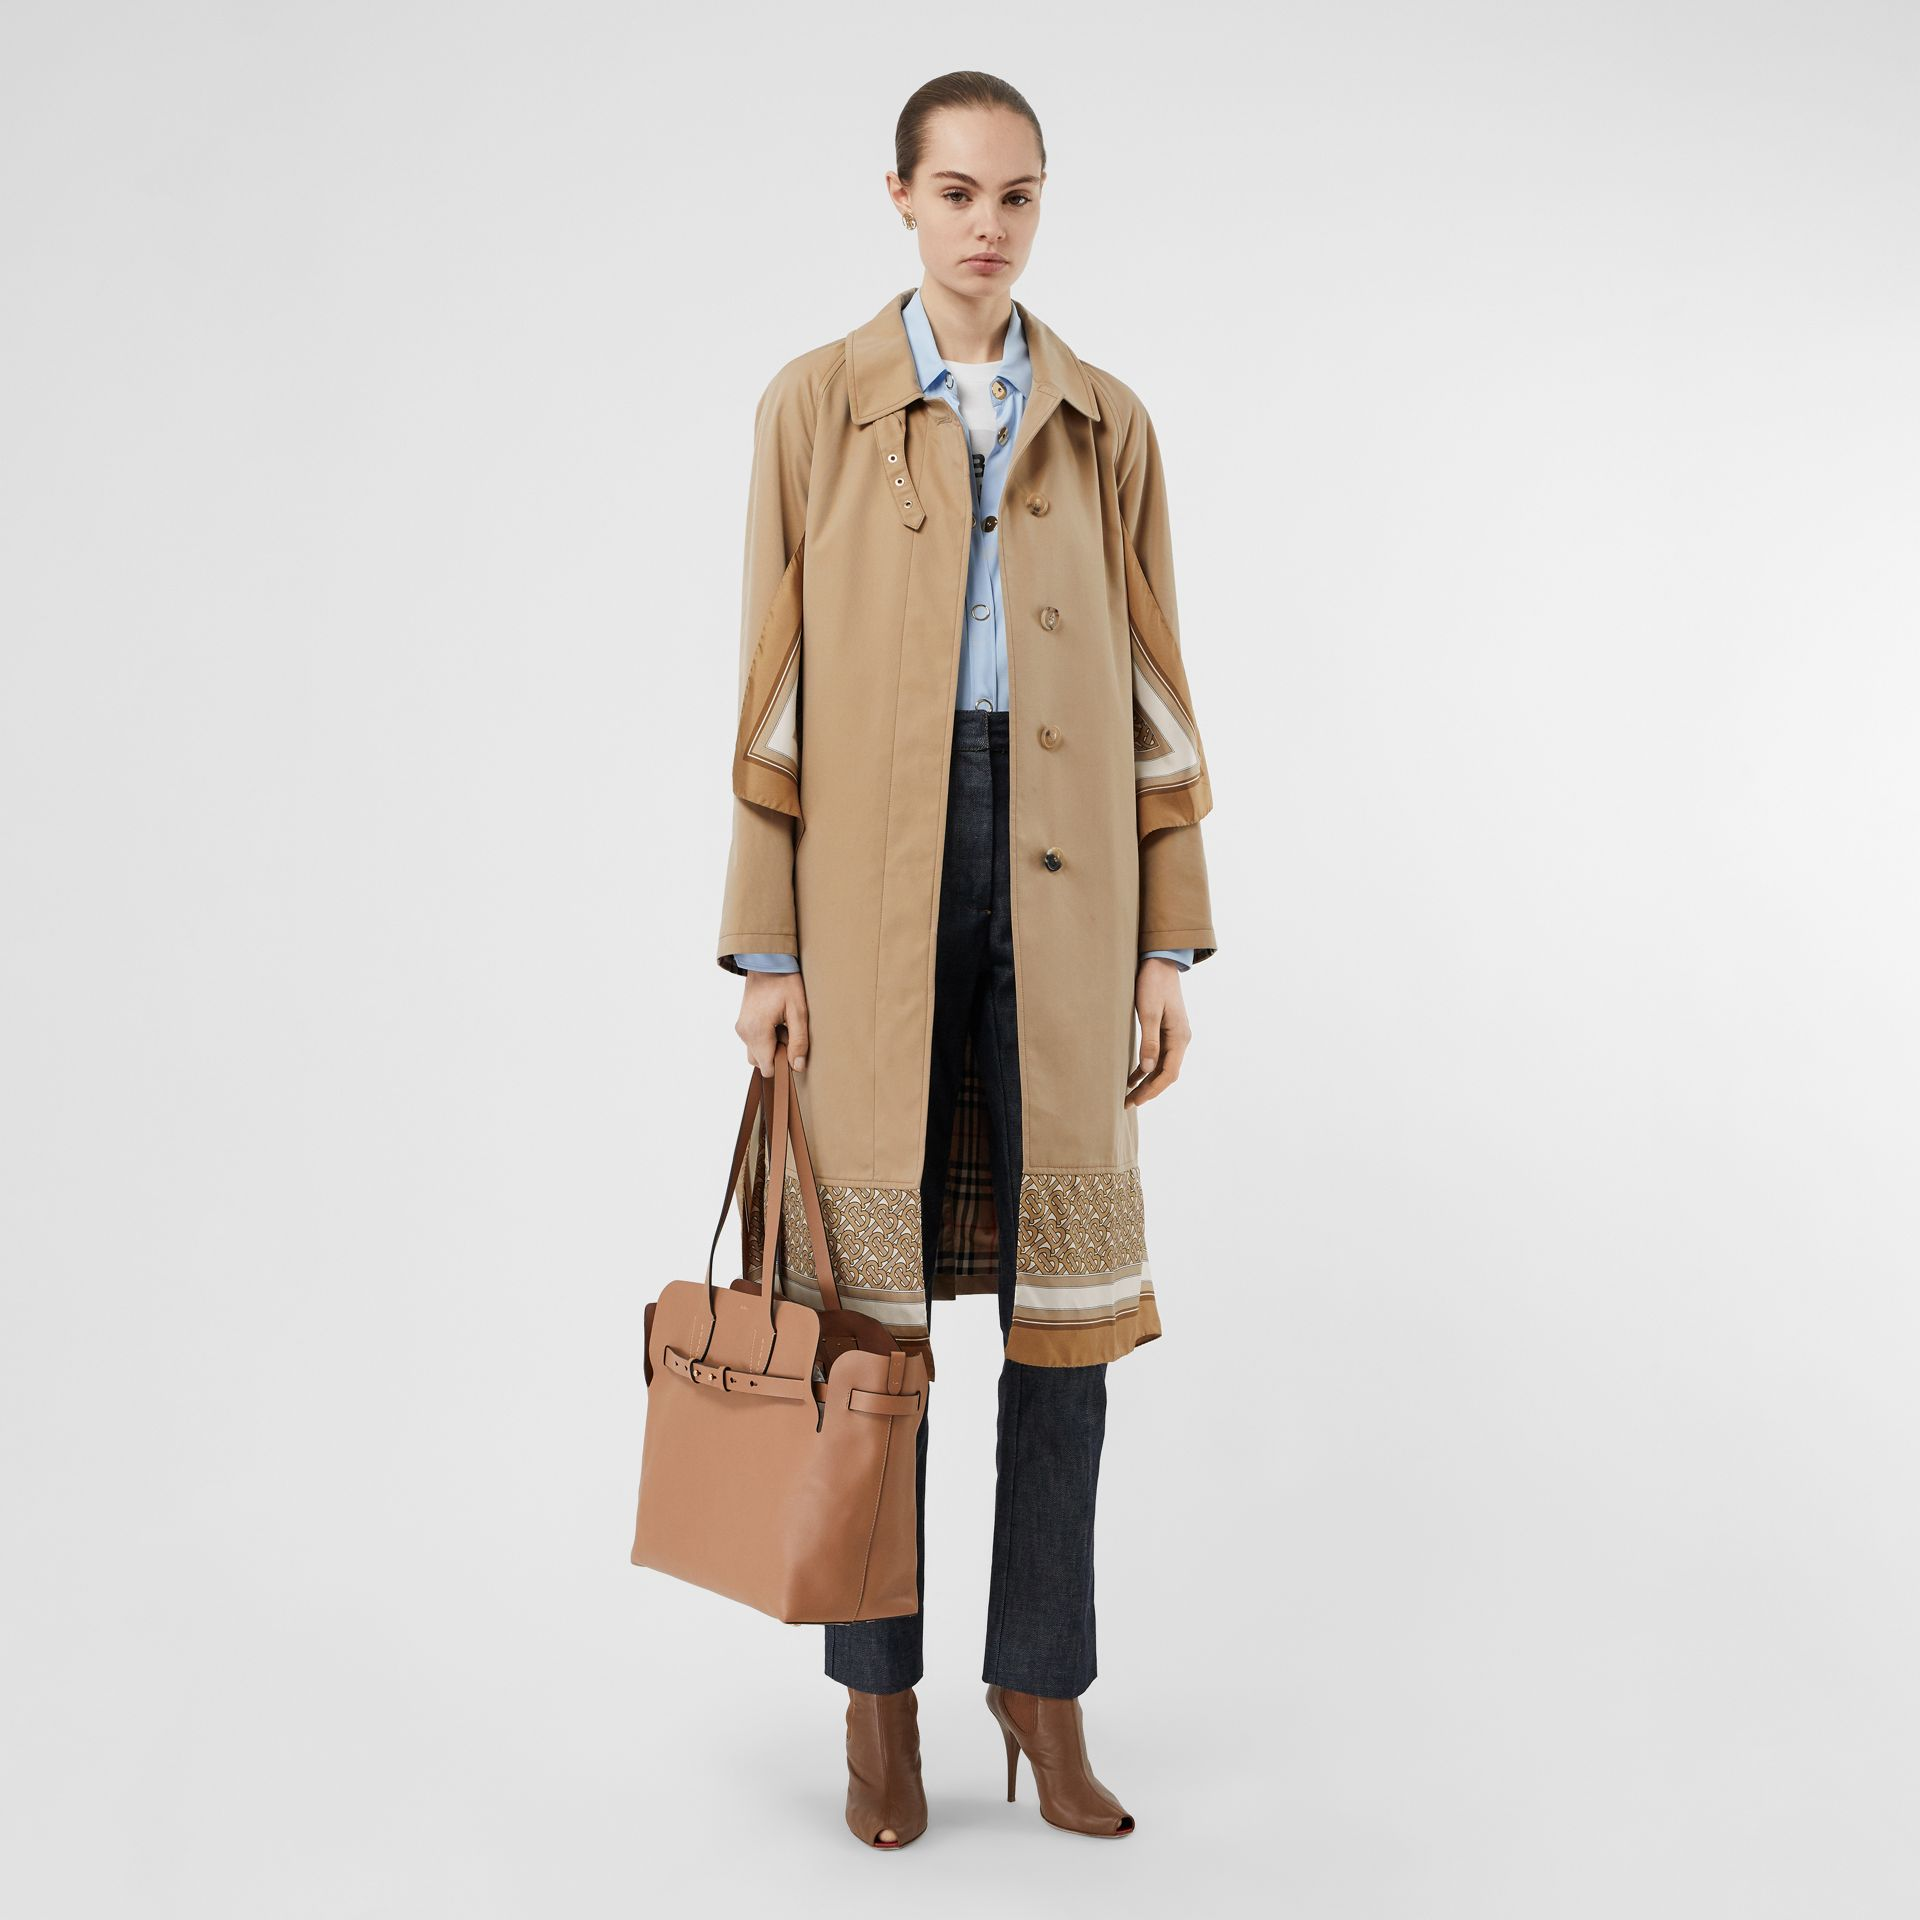 Sac The Belt moyen en cuir doux (Camel Clair) - Femme | Burberry - photo de la galerie 5